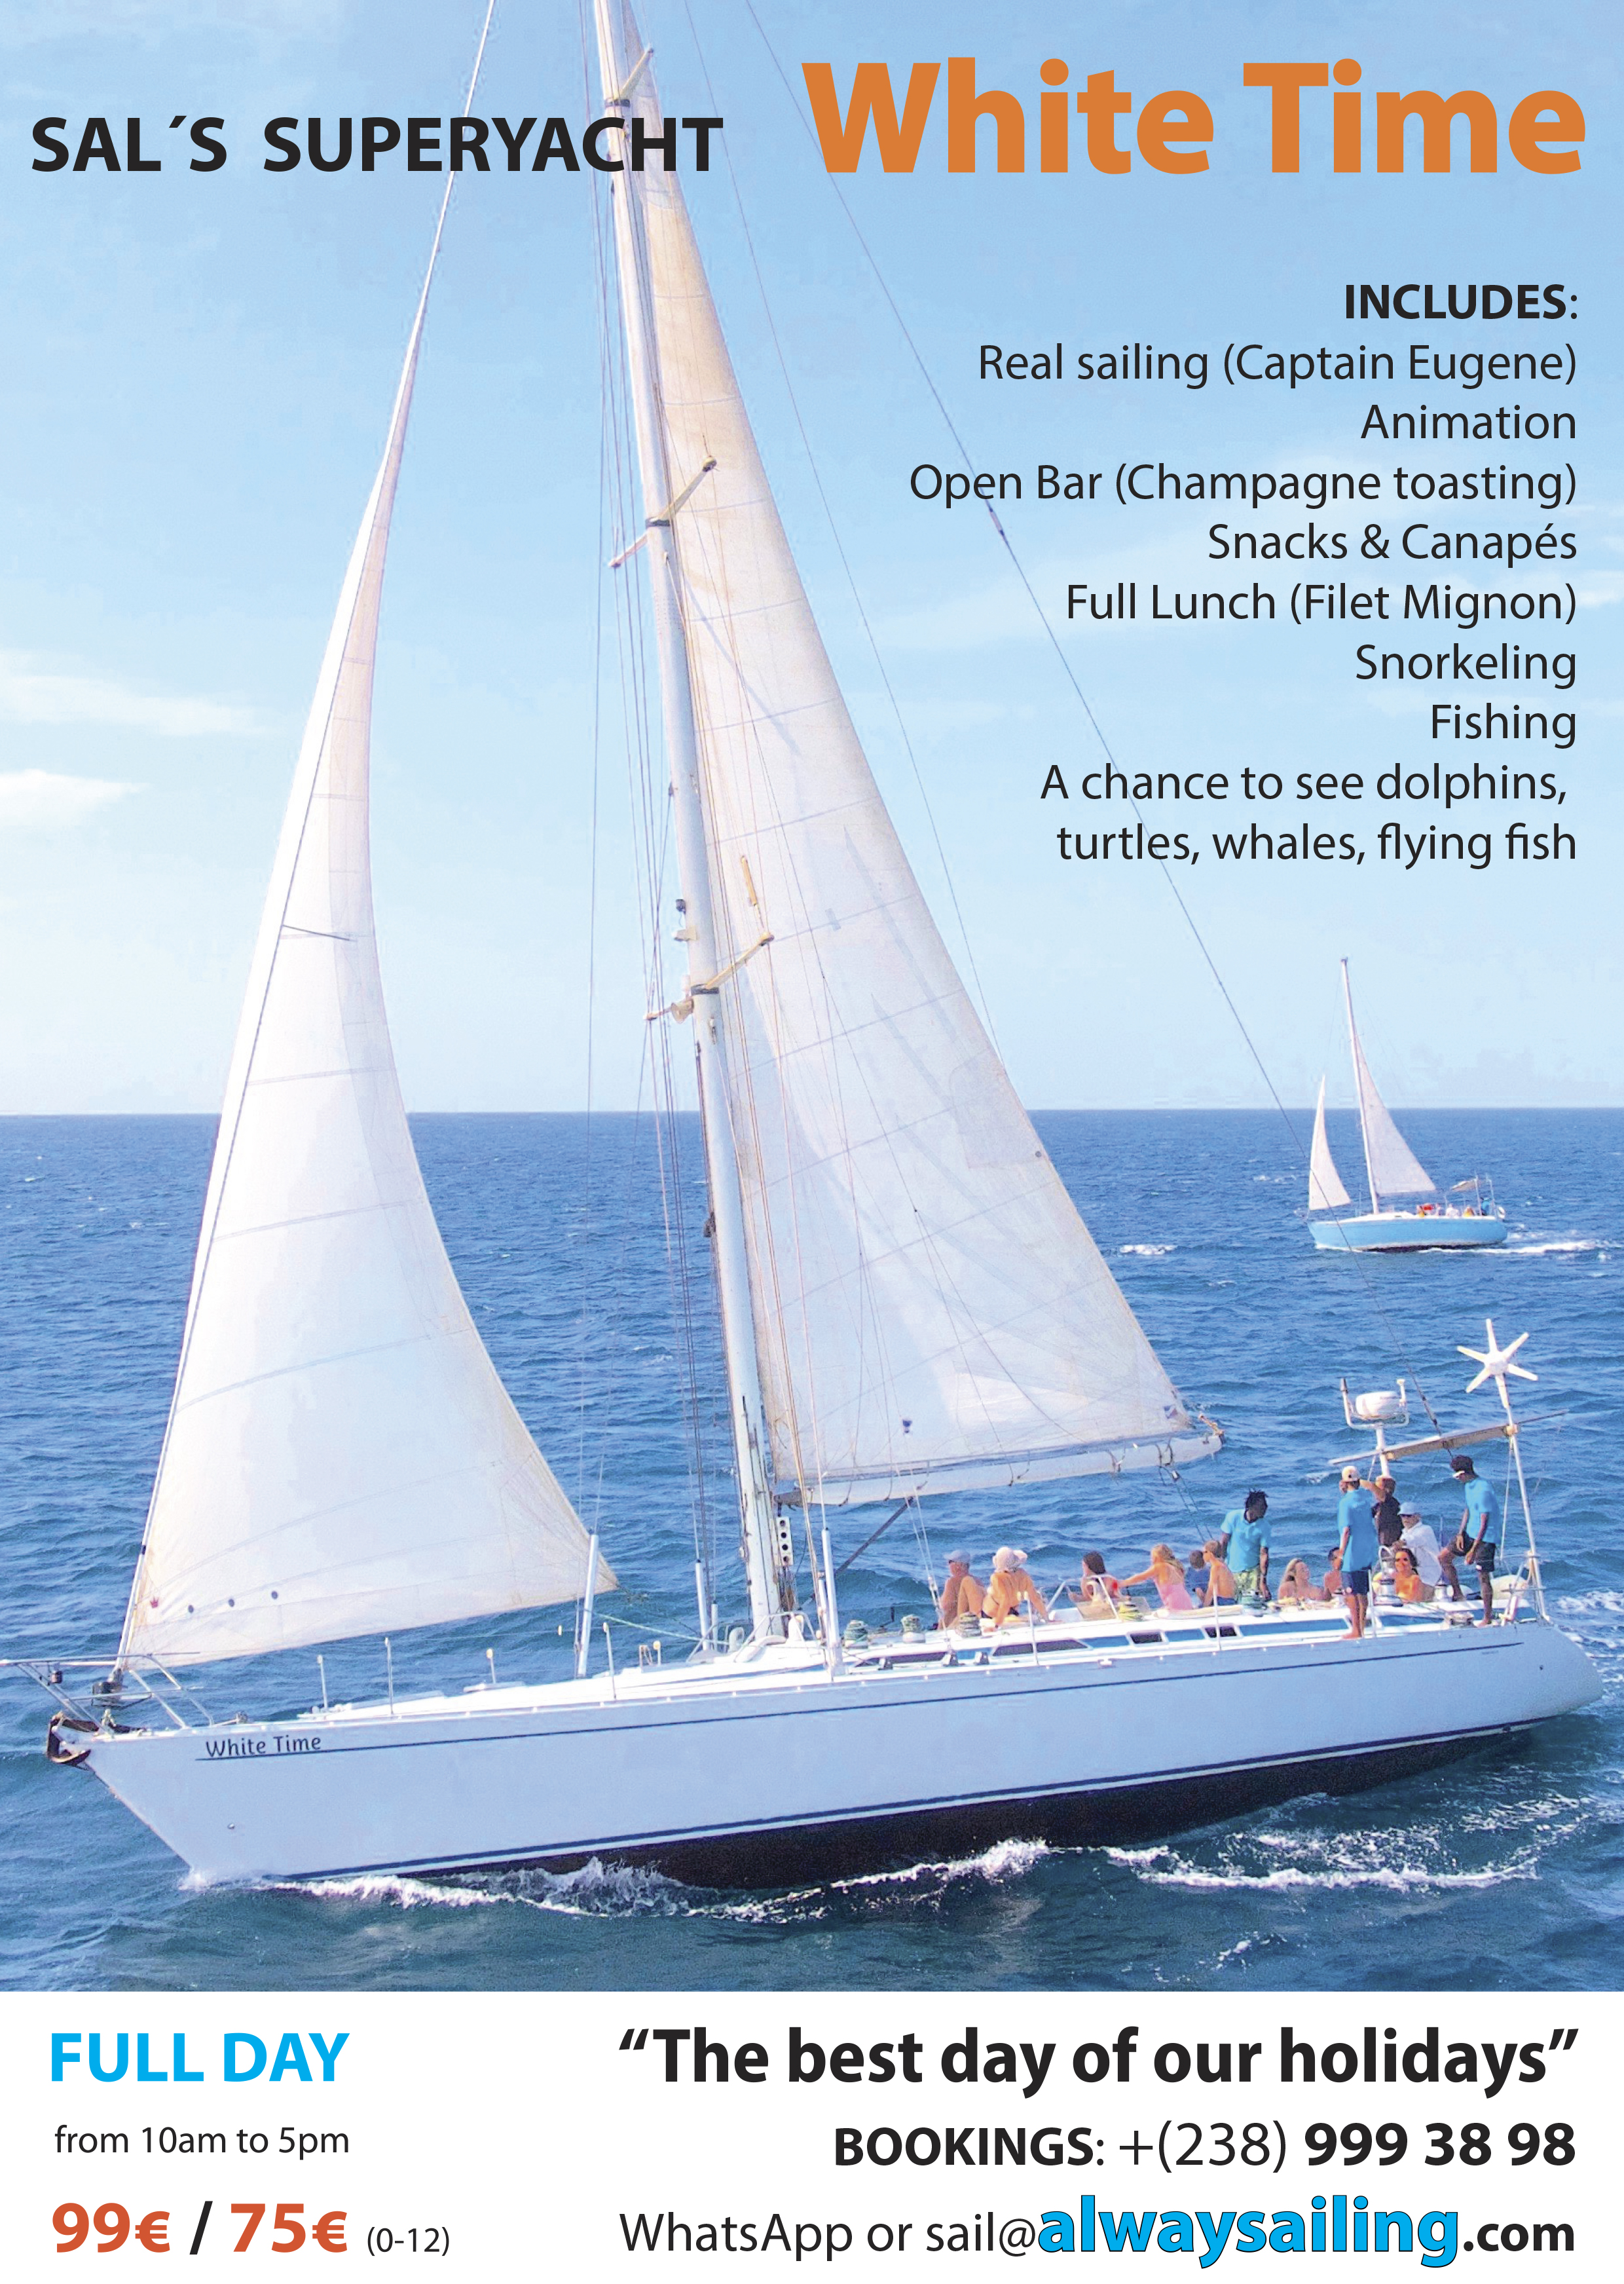 White Time - This is our best trip, a full day of sailing, snorkelling, fishing, full lunch, open bar, etcJoin us on Tuesdays and SaturdaysFrom 10am to 5pmAdults 99€ Children 75€ (0 - 16)